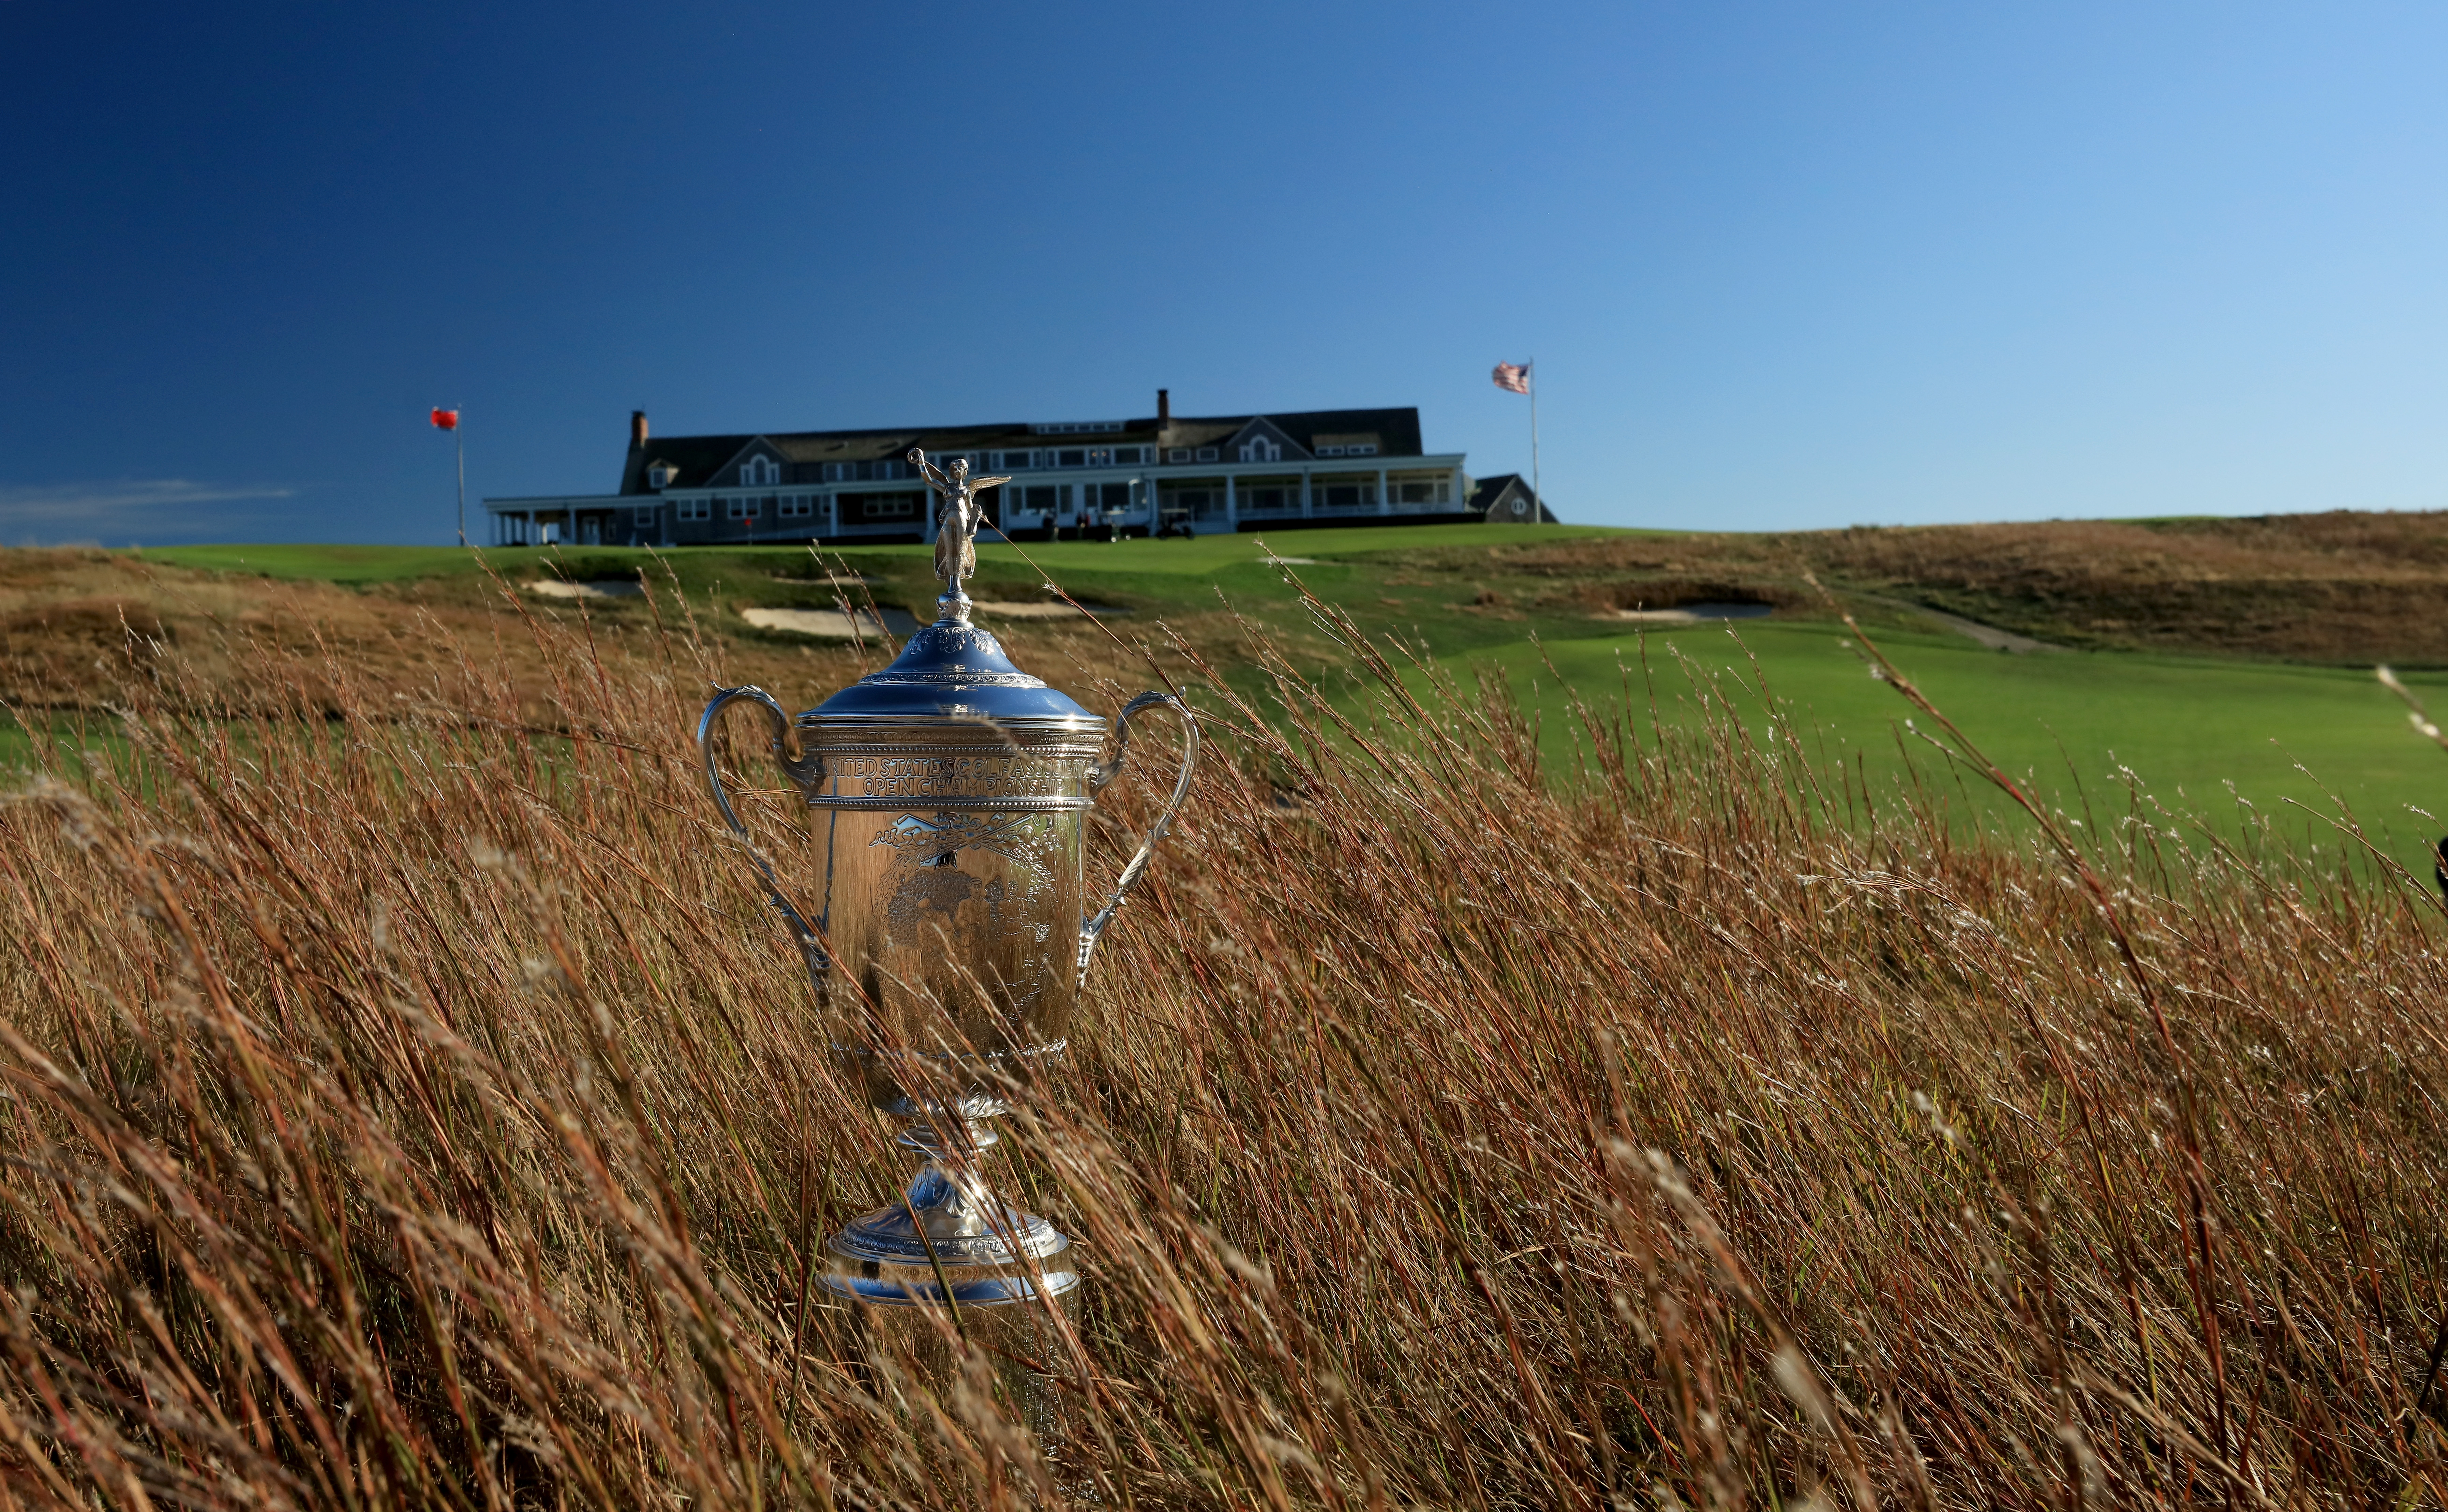 SOUTHAMPTON, NY - OCTOBER 04: EDITORS NOTE: Polarising filter used on the camera in this image; The United States Open trophy placed in the long grass beside the 18th hole at Shinnecock Hills Golf Club the host venue for the 2018 US Open Championship on October 4, 2017 in Southampton, New York. (Photo by David Cannon/Getty Images)